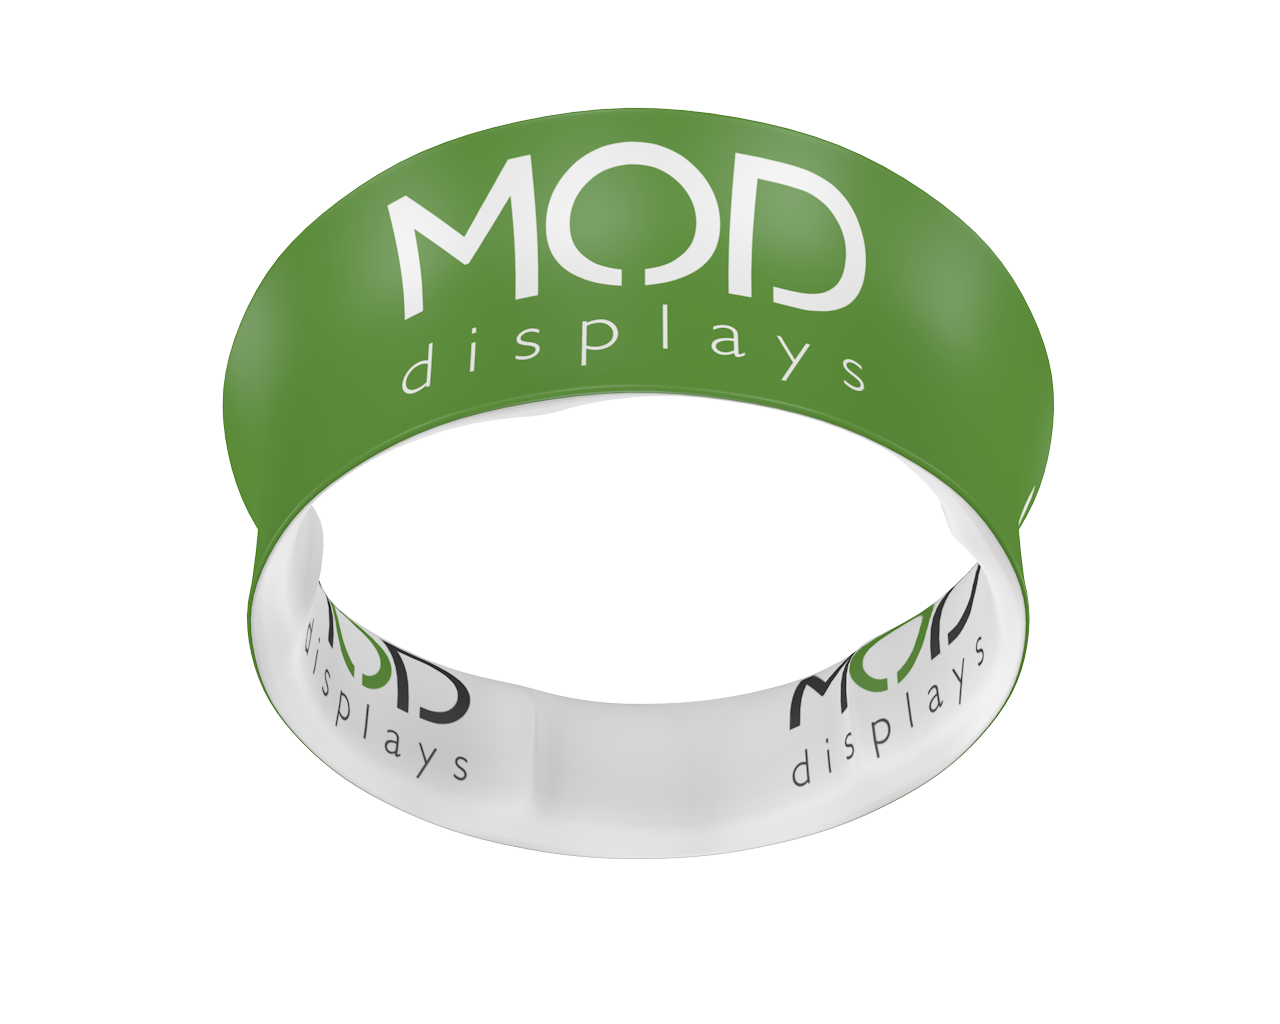 Blimp Tube Tapered Circular Hanging Sign Double-Sided Graphic